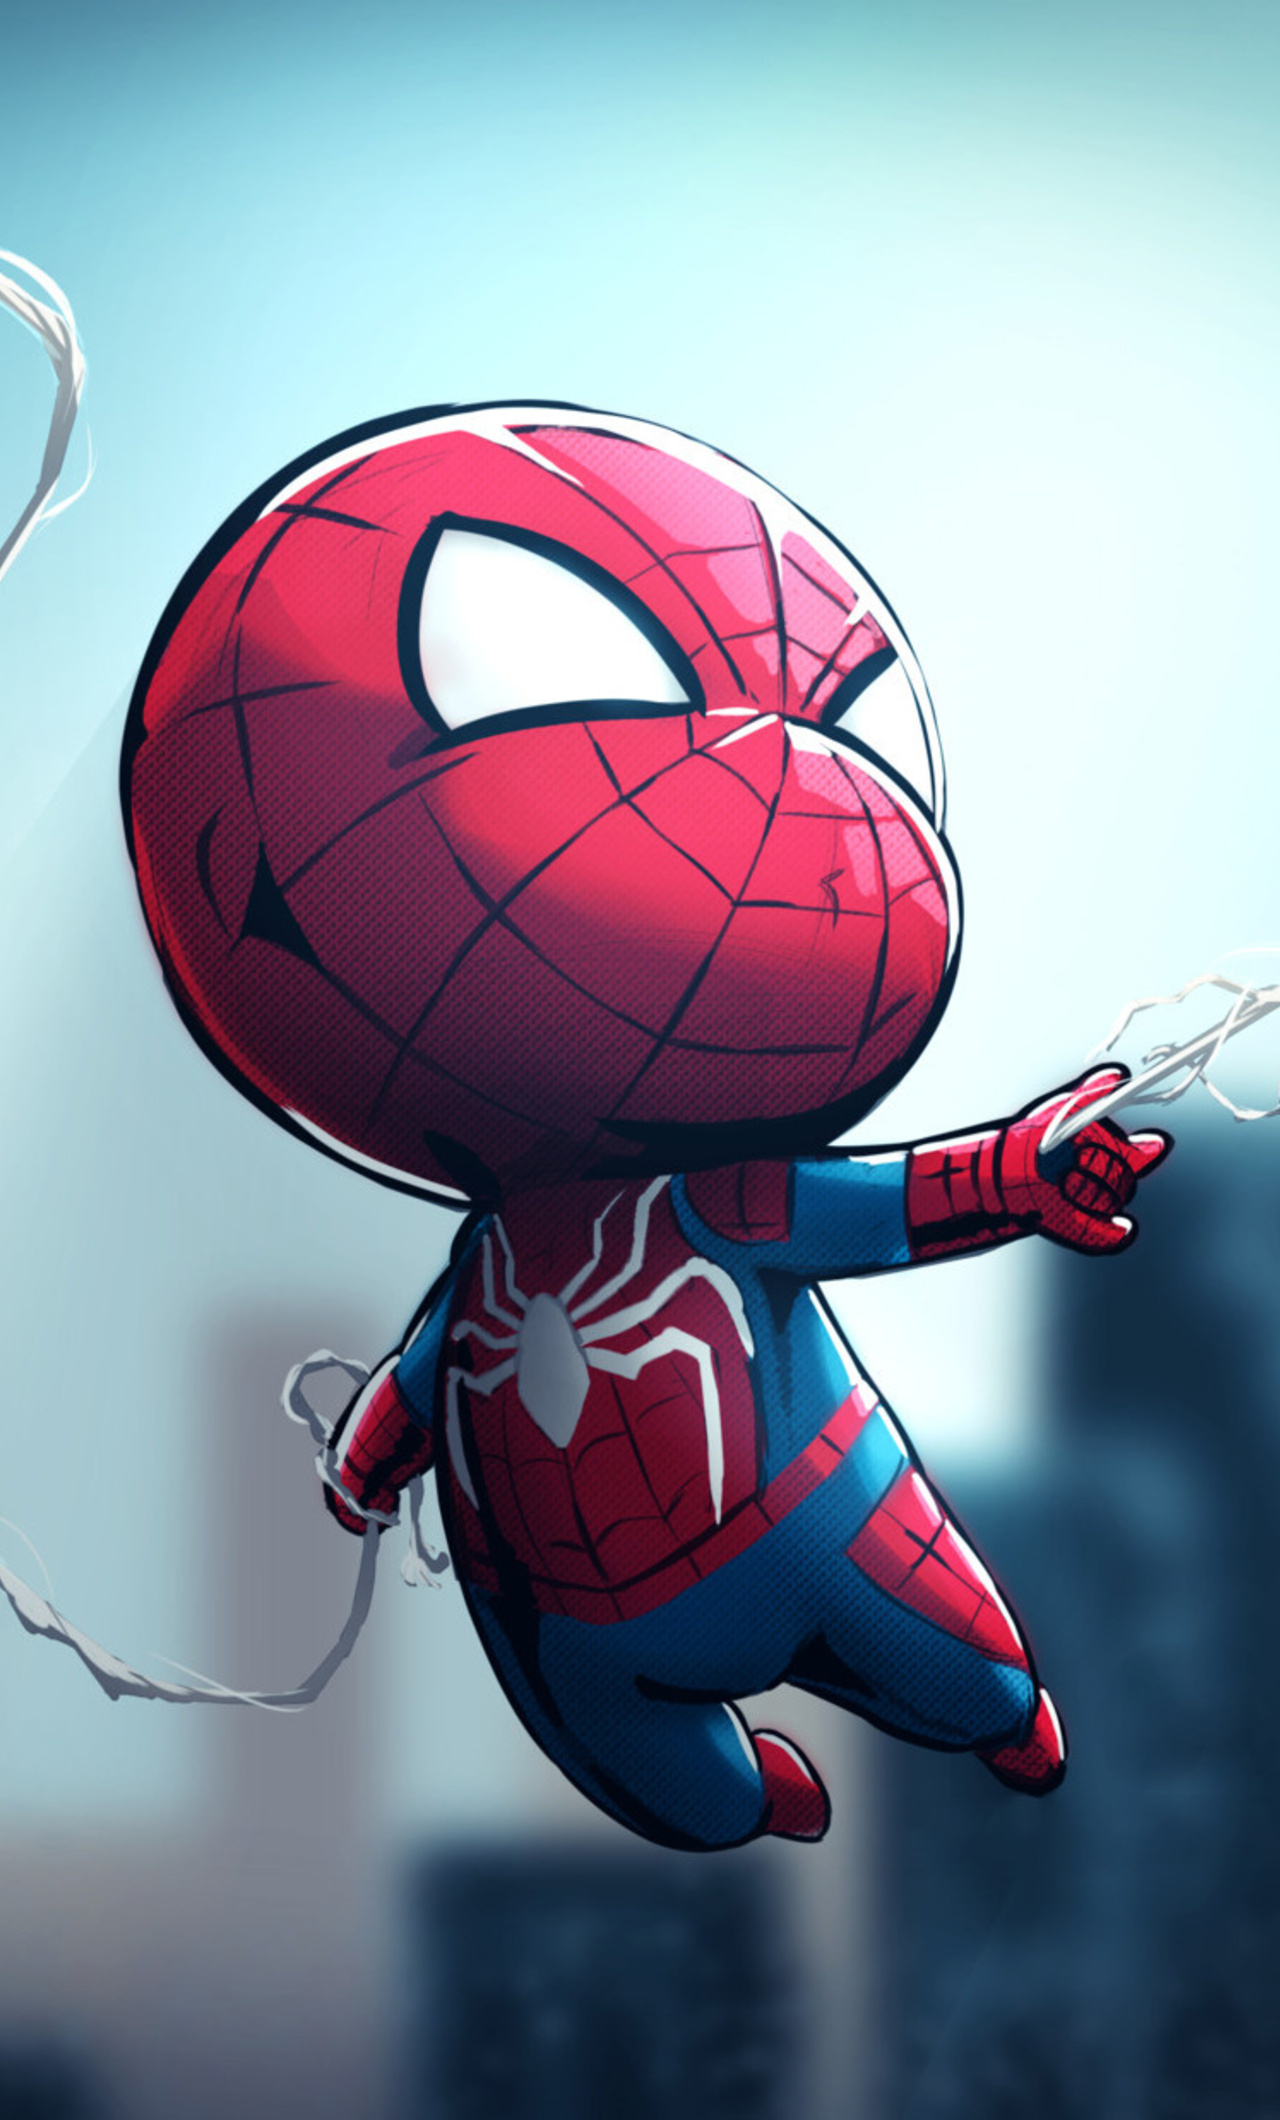 1280x2120 chibi spiderman iphone 6 hd 4k wallpapers - Iphone 6 spiderman wallpaper ...